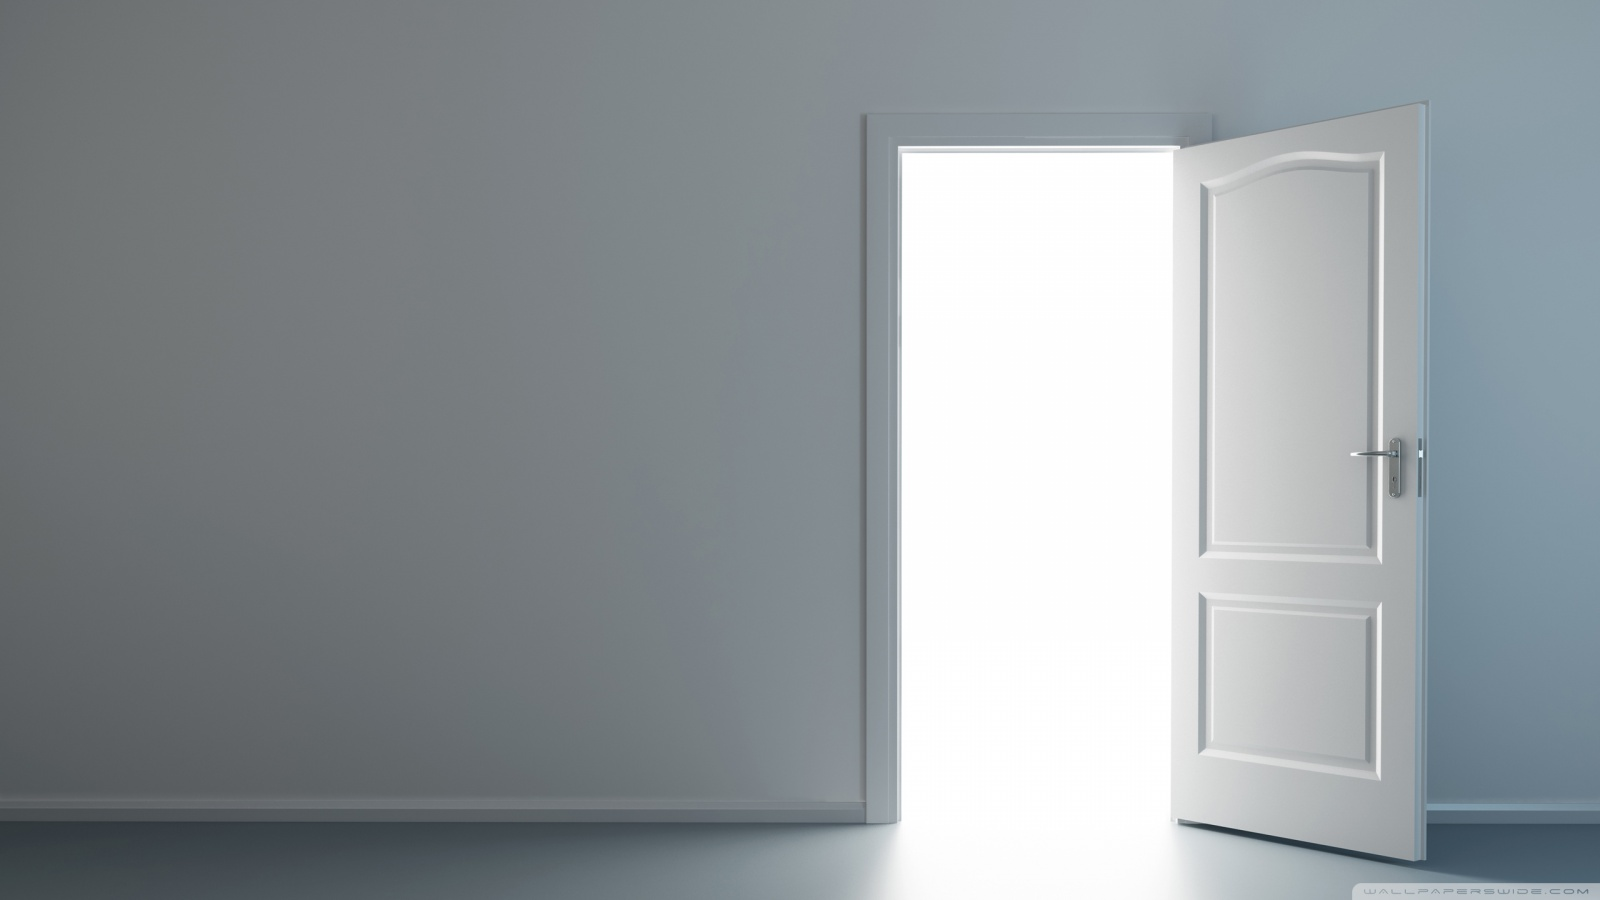 Door Hd Png Transparent Door Hd Png Images Pluspng